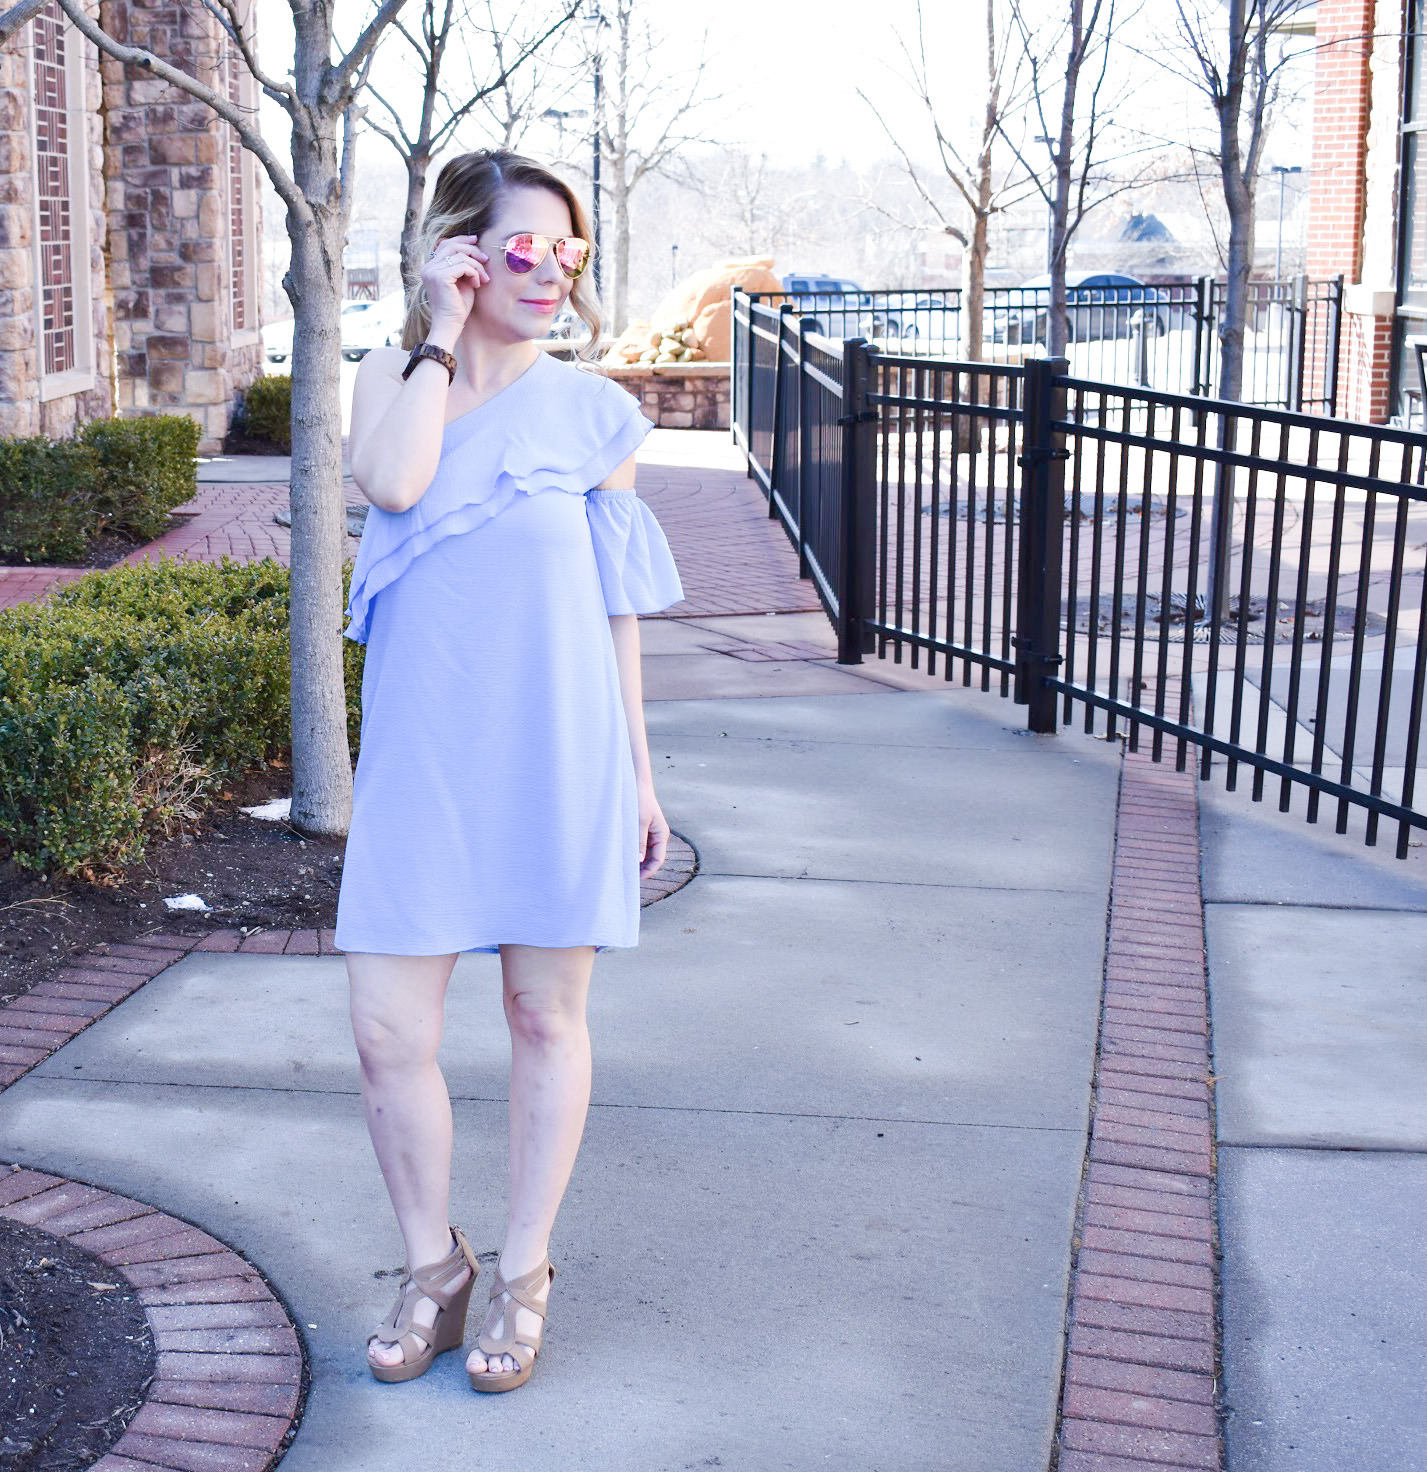 Top 5 Spring Fashion Trends 2018 - Wondering what the top spring trends will be in 2018? Fashion blogger COVET by tricia shares her top 5 spring must-haves to get you ready for warmer weather! From clothes to accessories, here's what your closet needs to be ready for spring 2018.